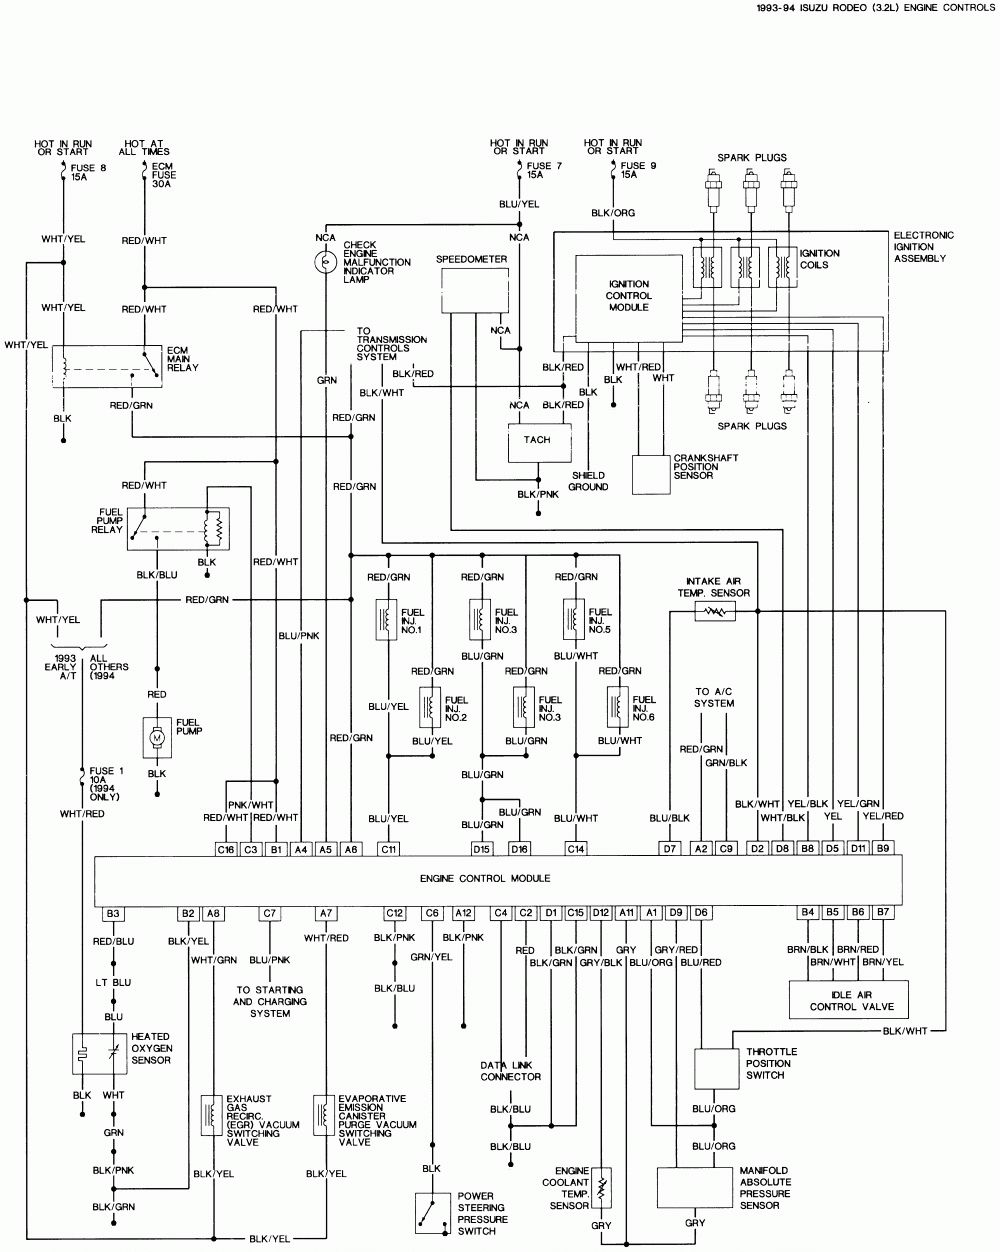 wiring diagram for 1997 isuzu trooper - wiring diagram schema versed-track  - versed-track.atmosphereconcept.it  atmosphereconcept.it